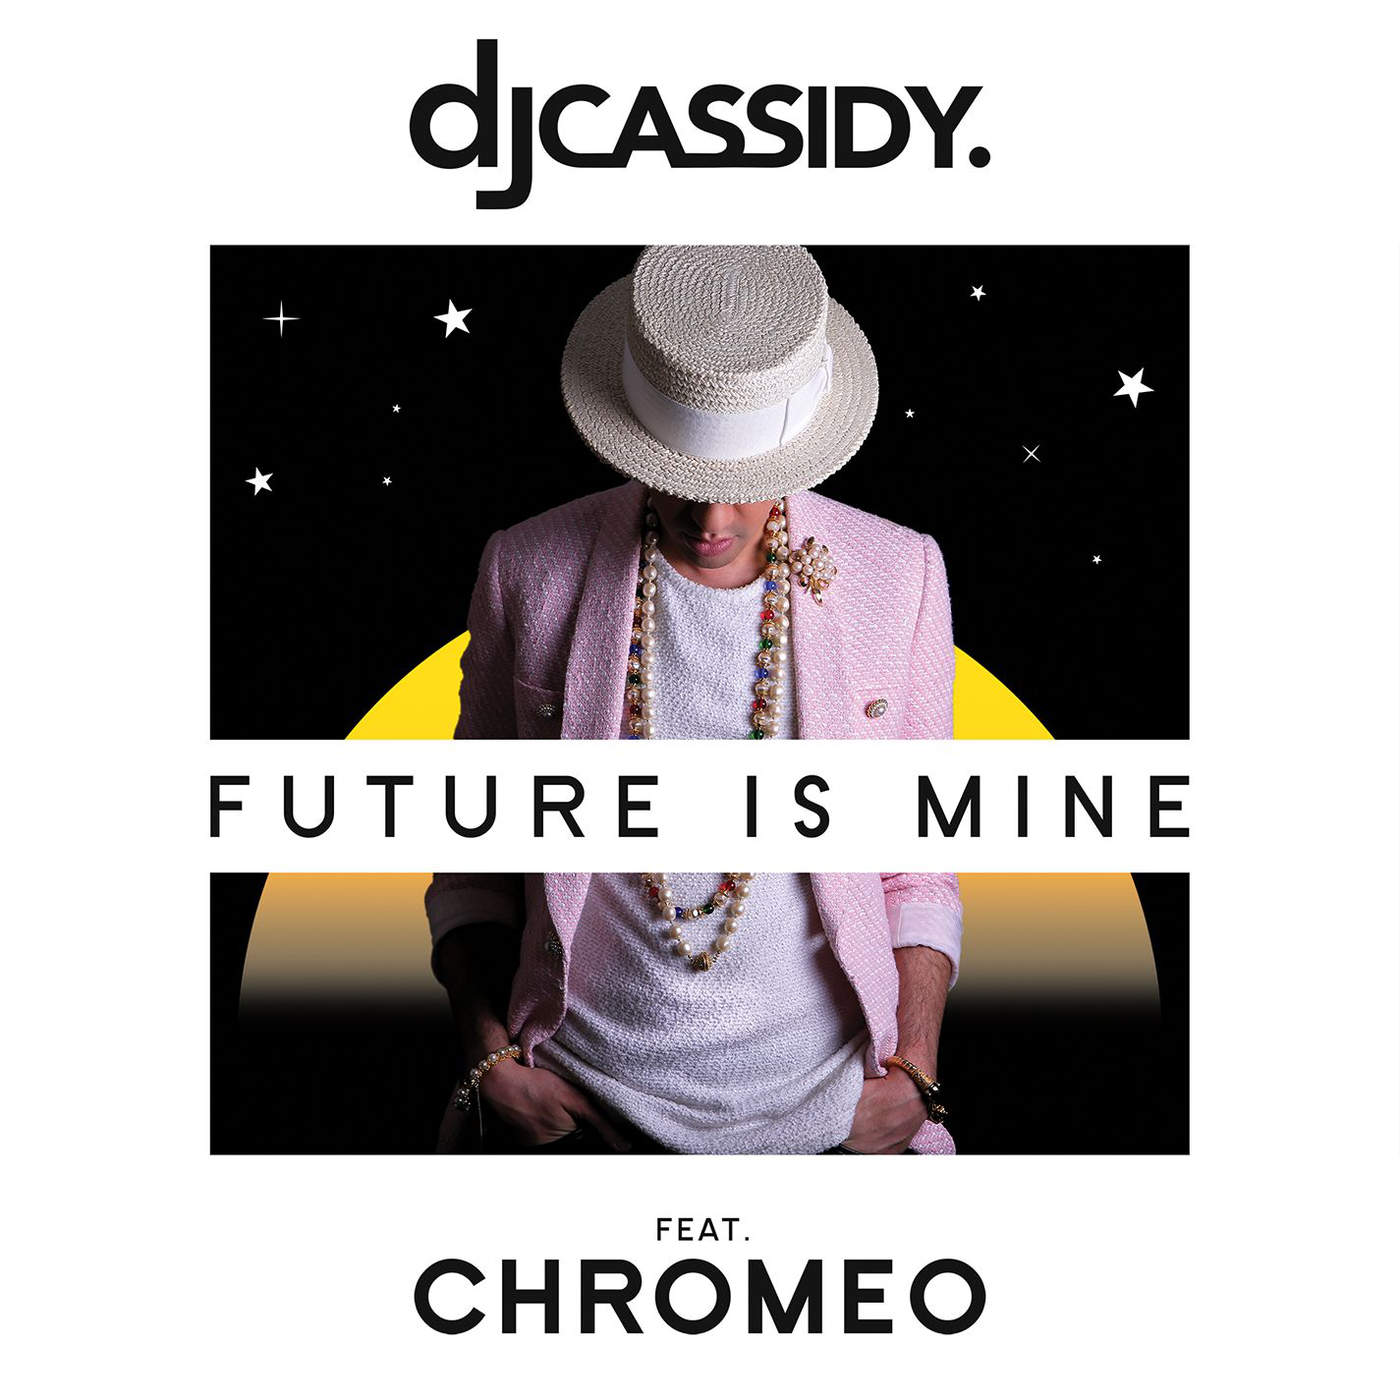 DJ Cassidy - Future Is Mine (feat. Chromeo) - Single Cover